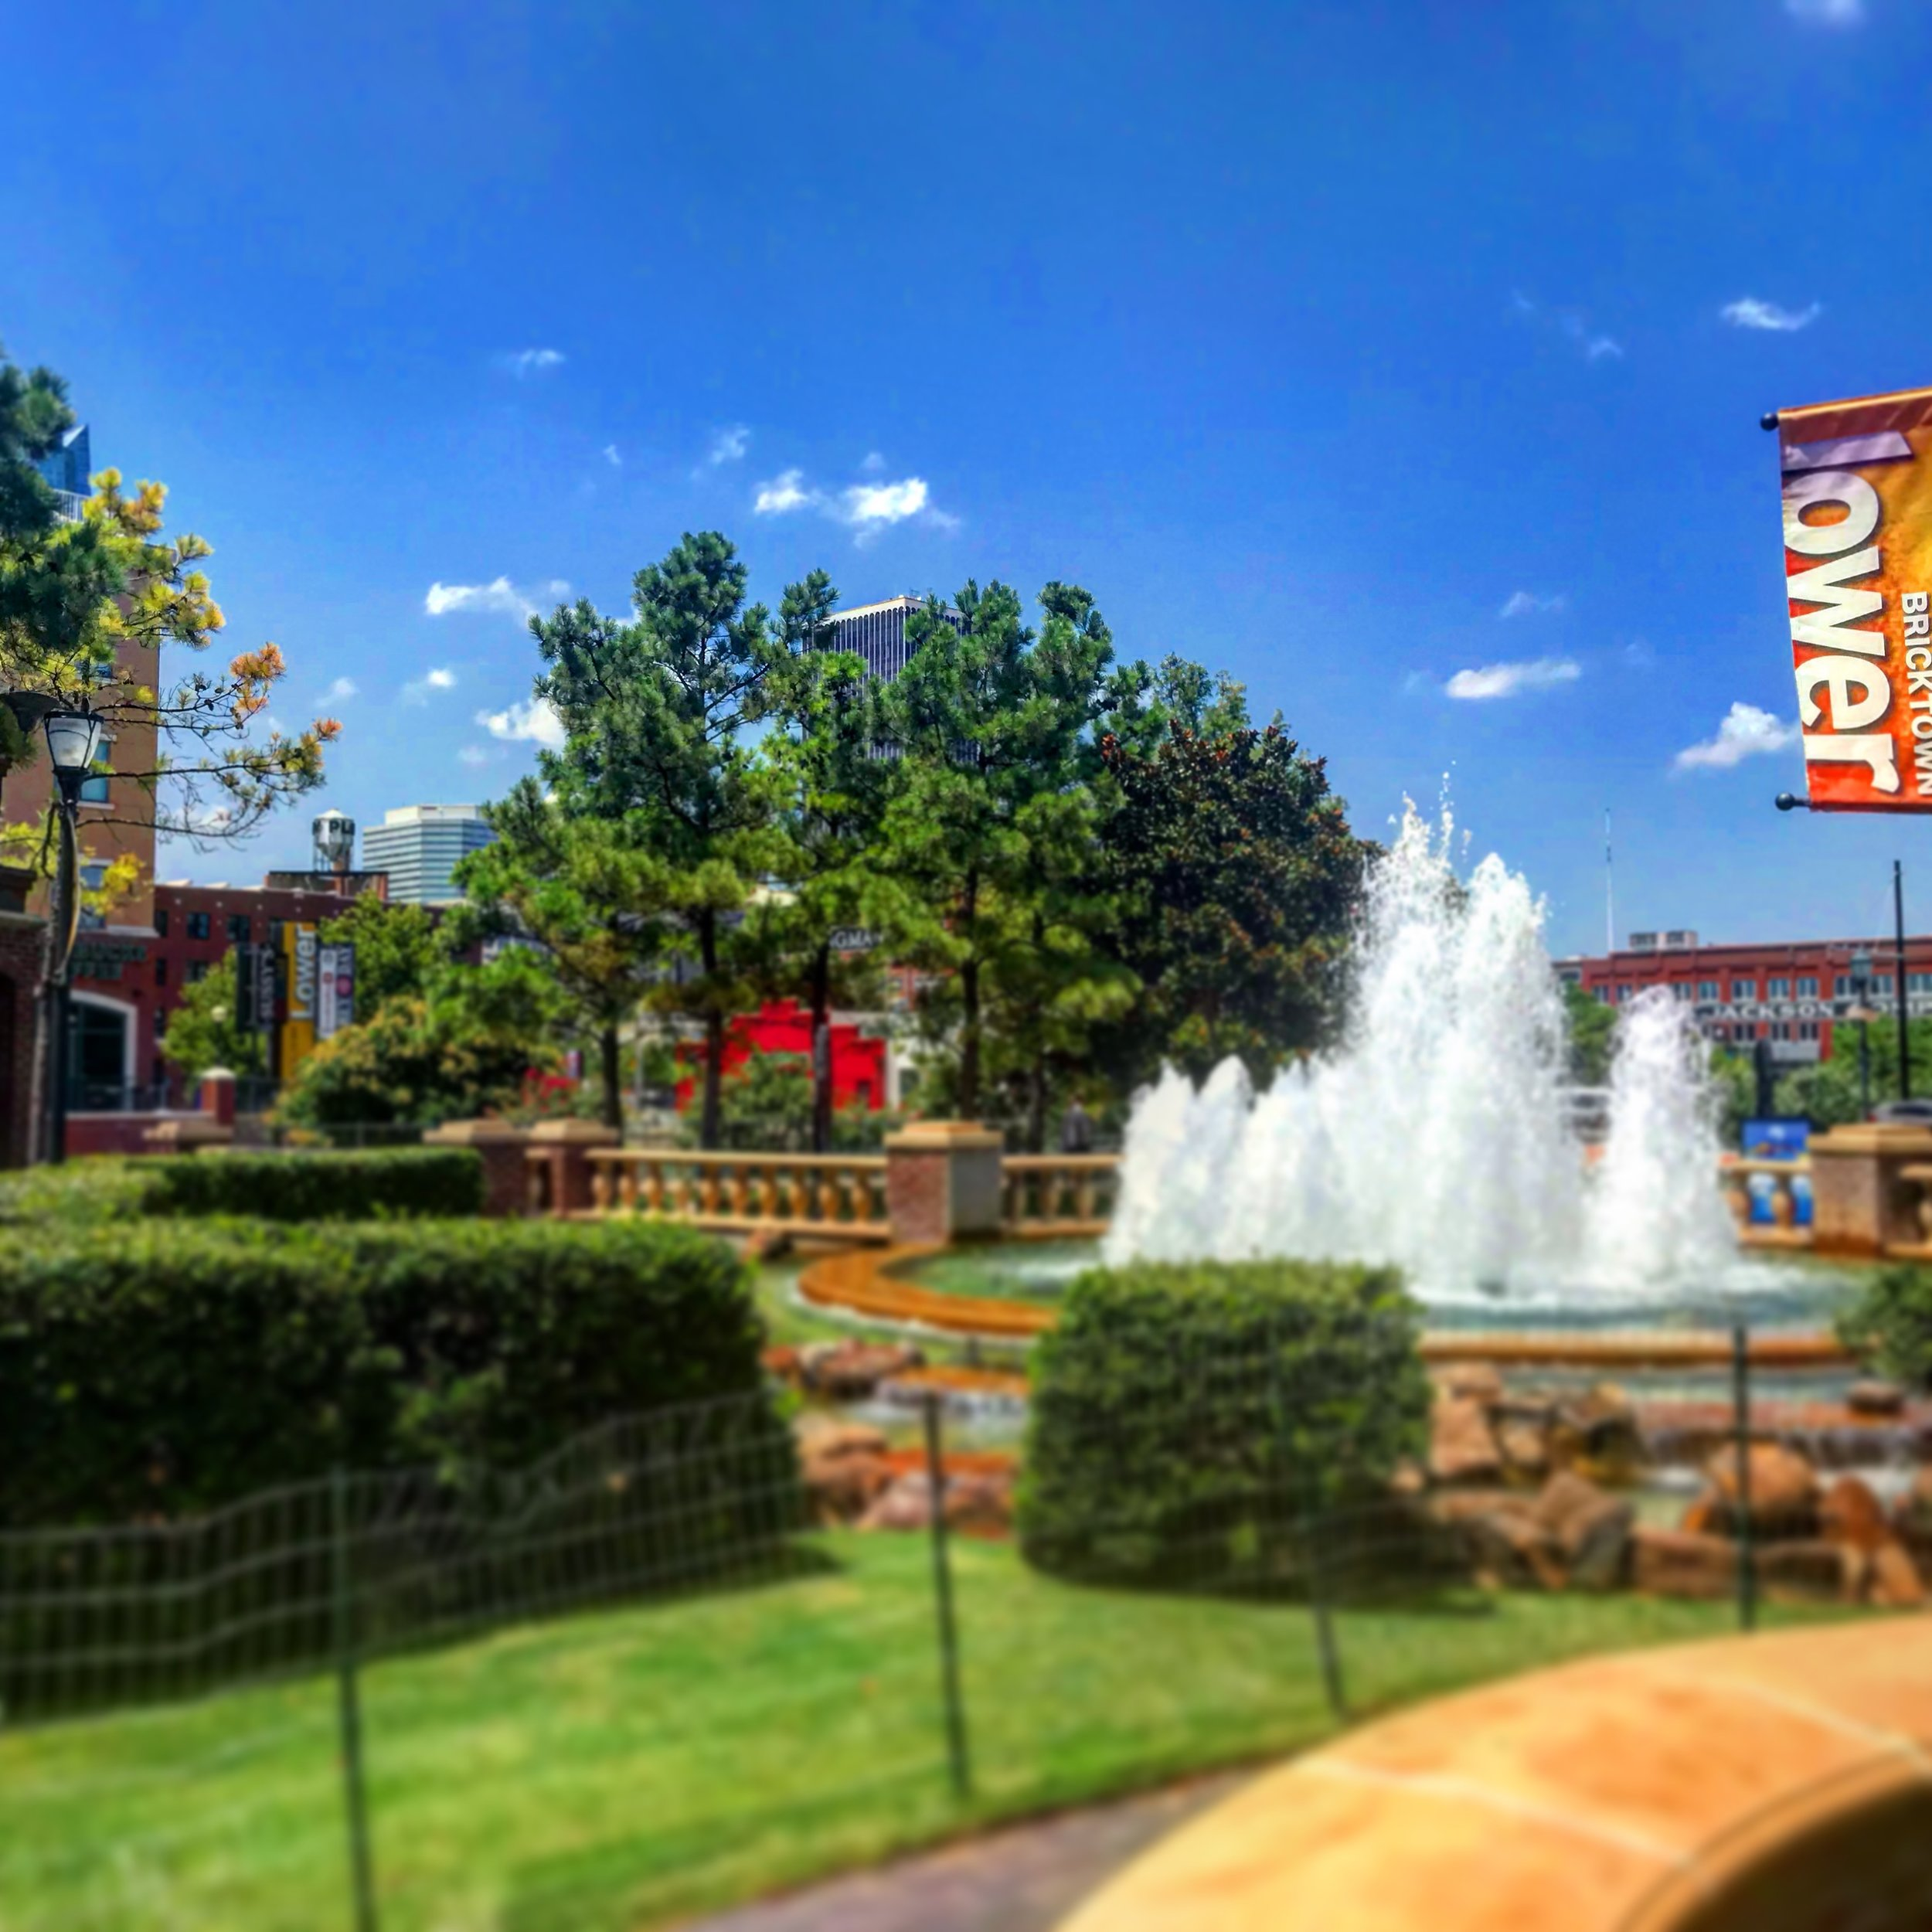 The Fountain at Lower Bricktown